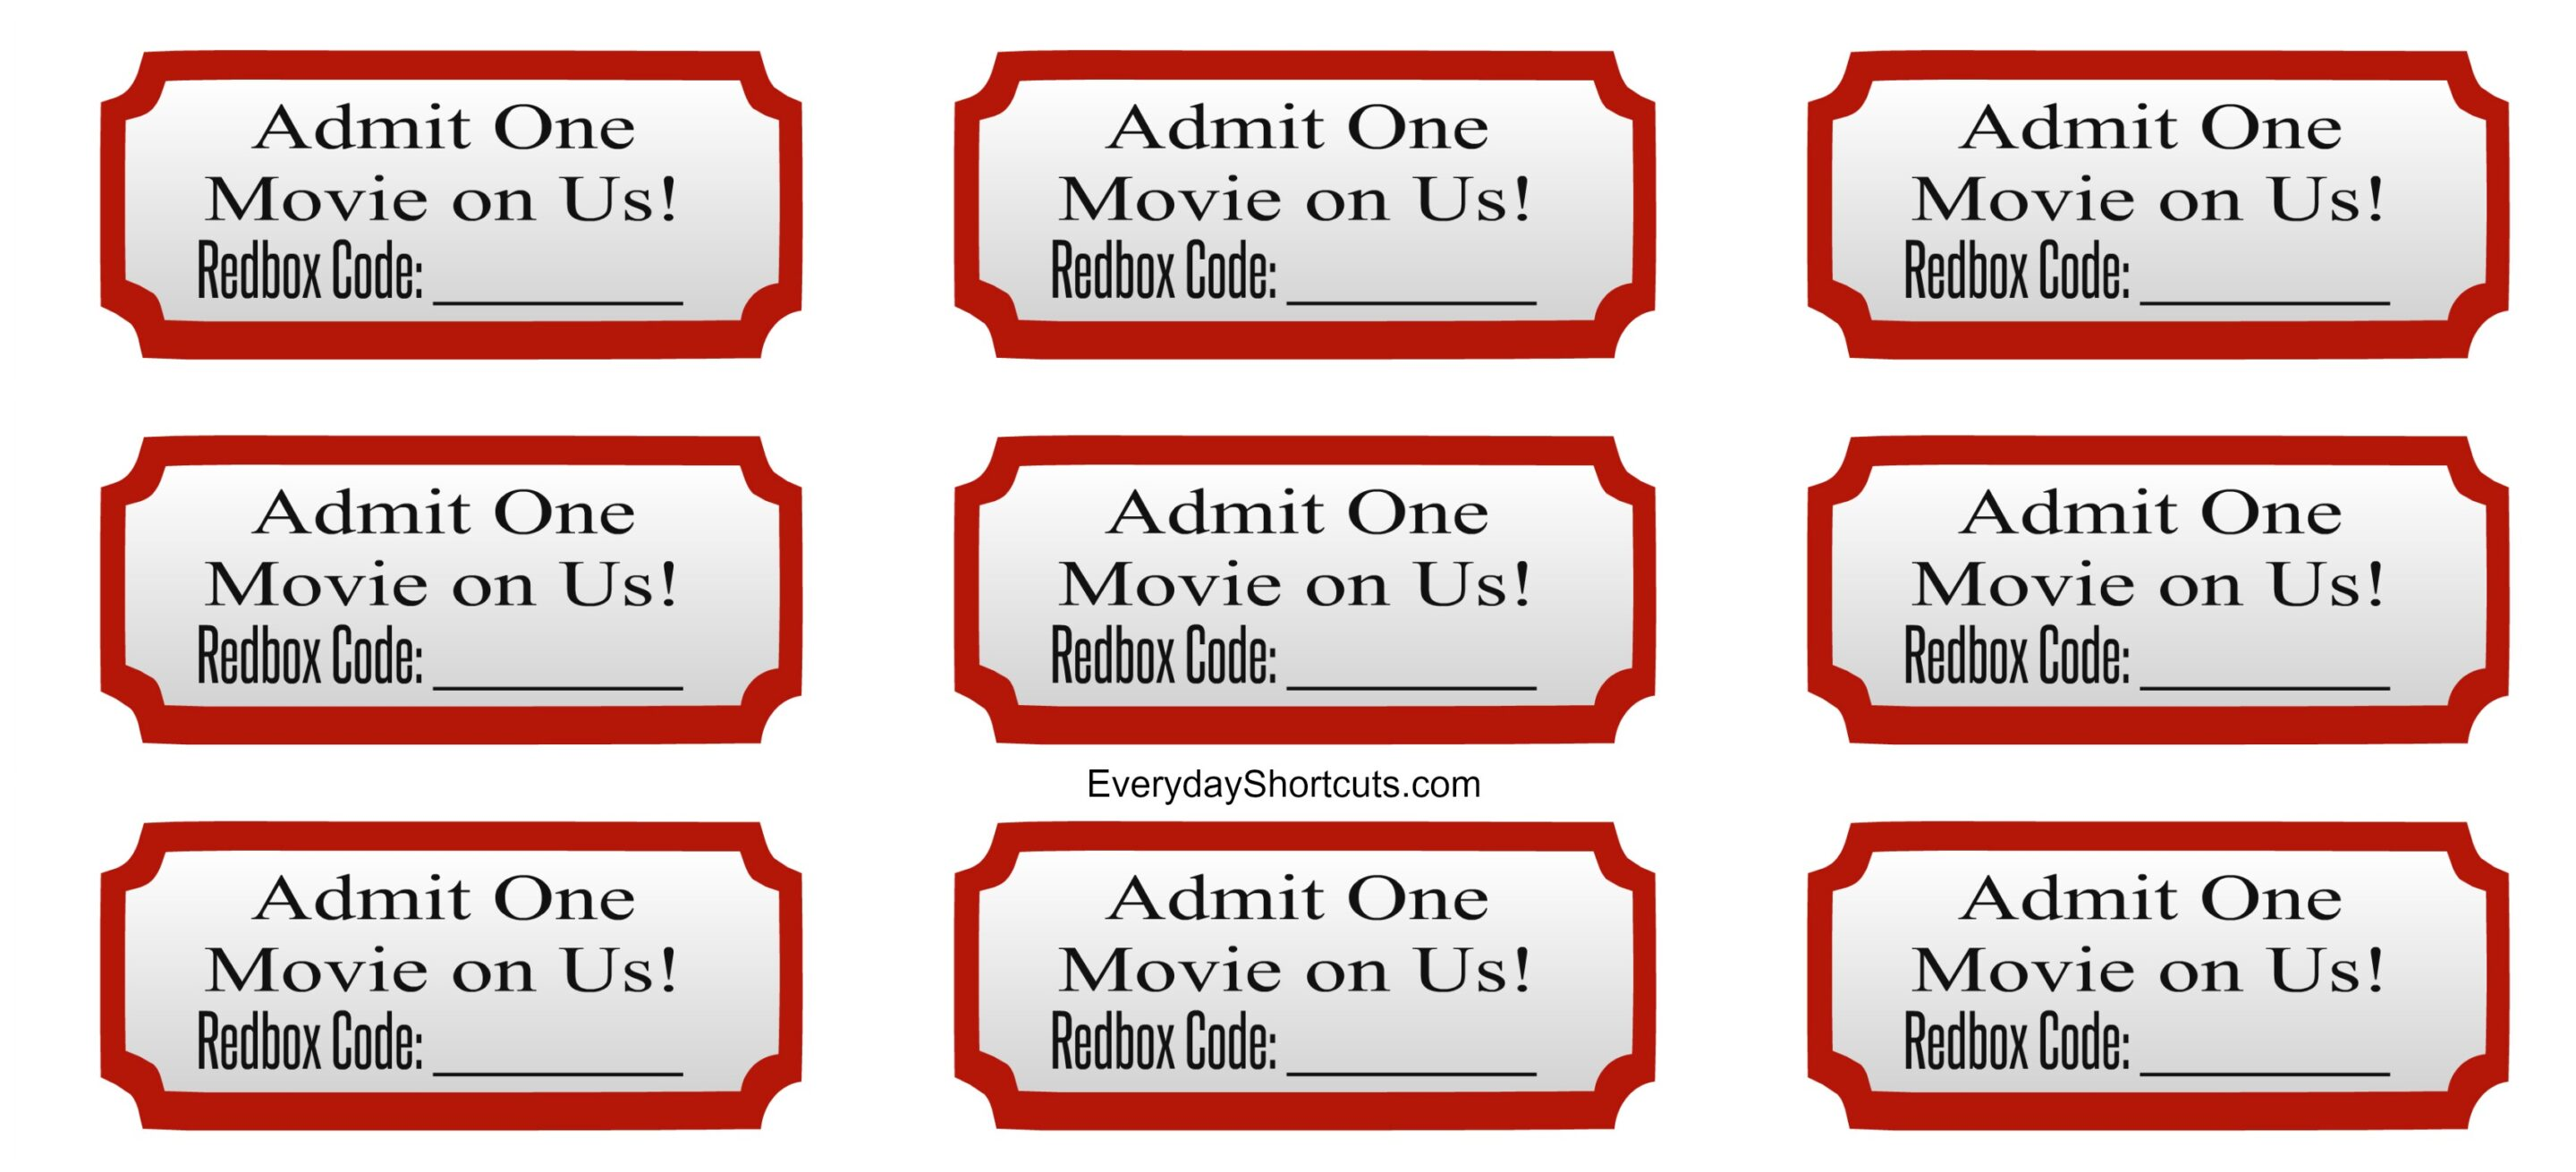 admit-one-movie-on-us